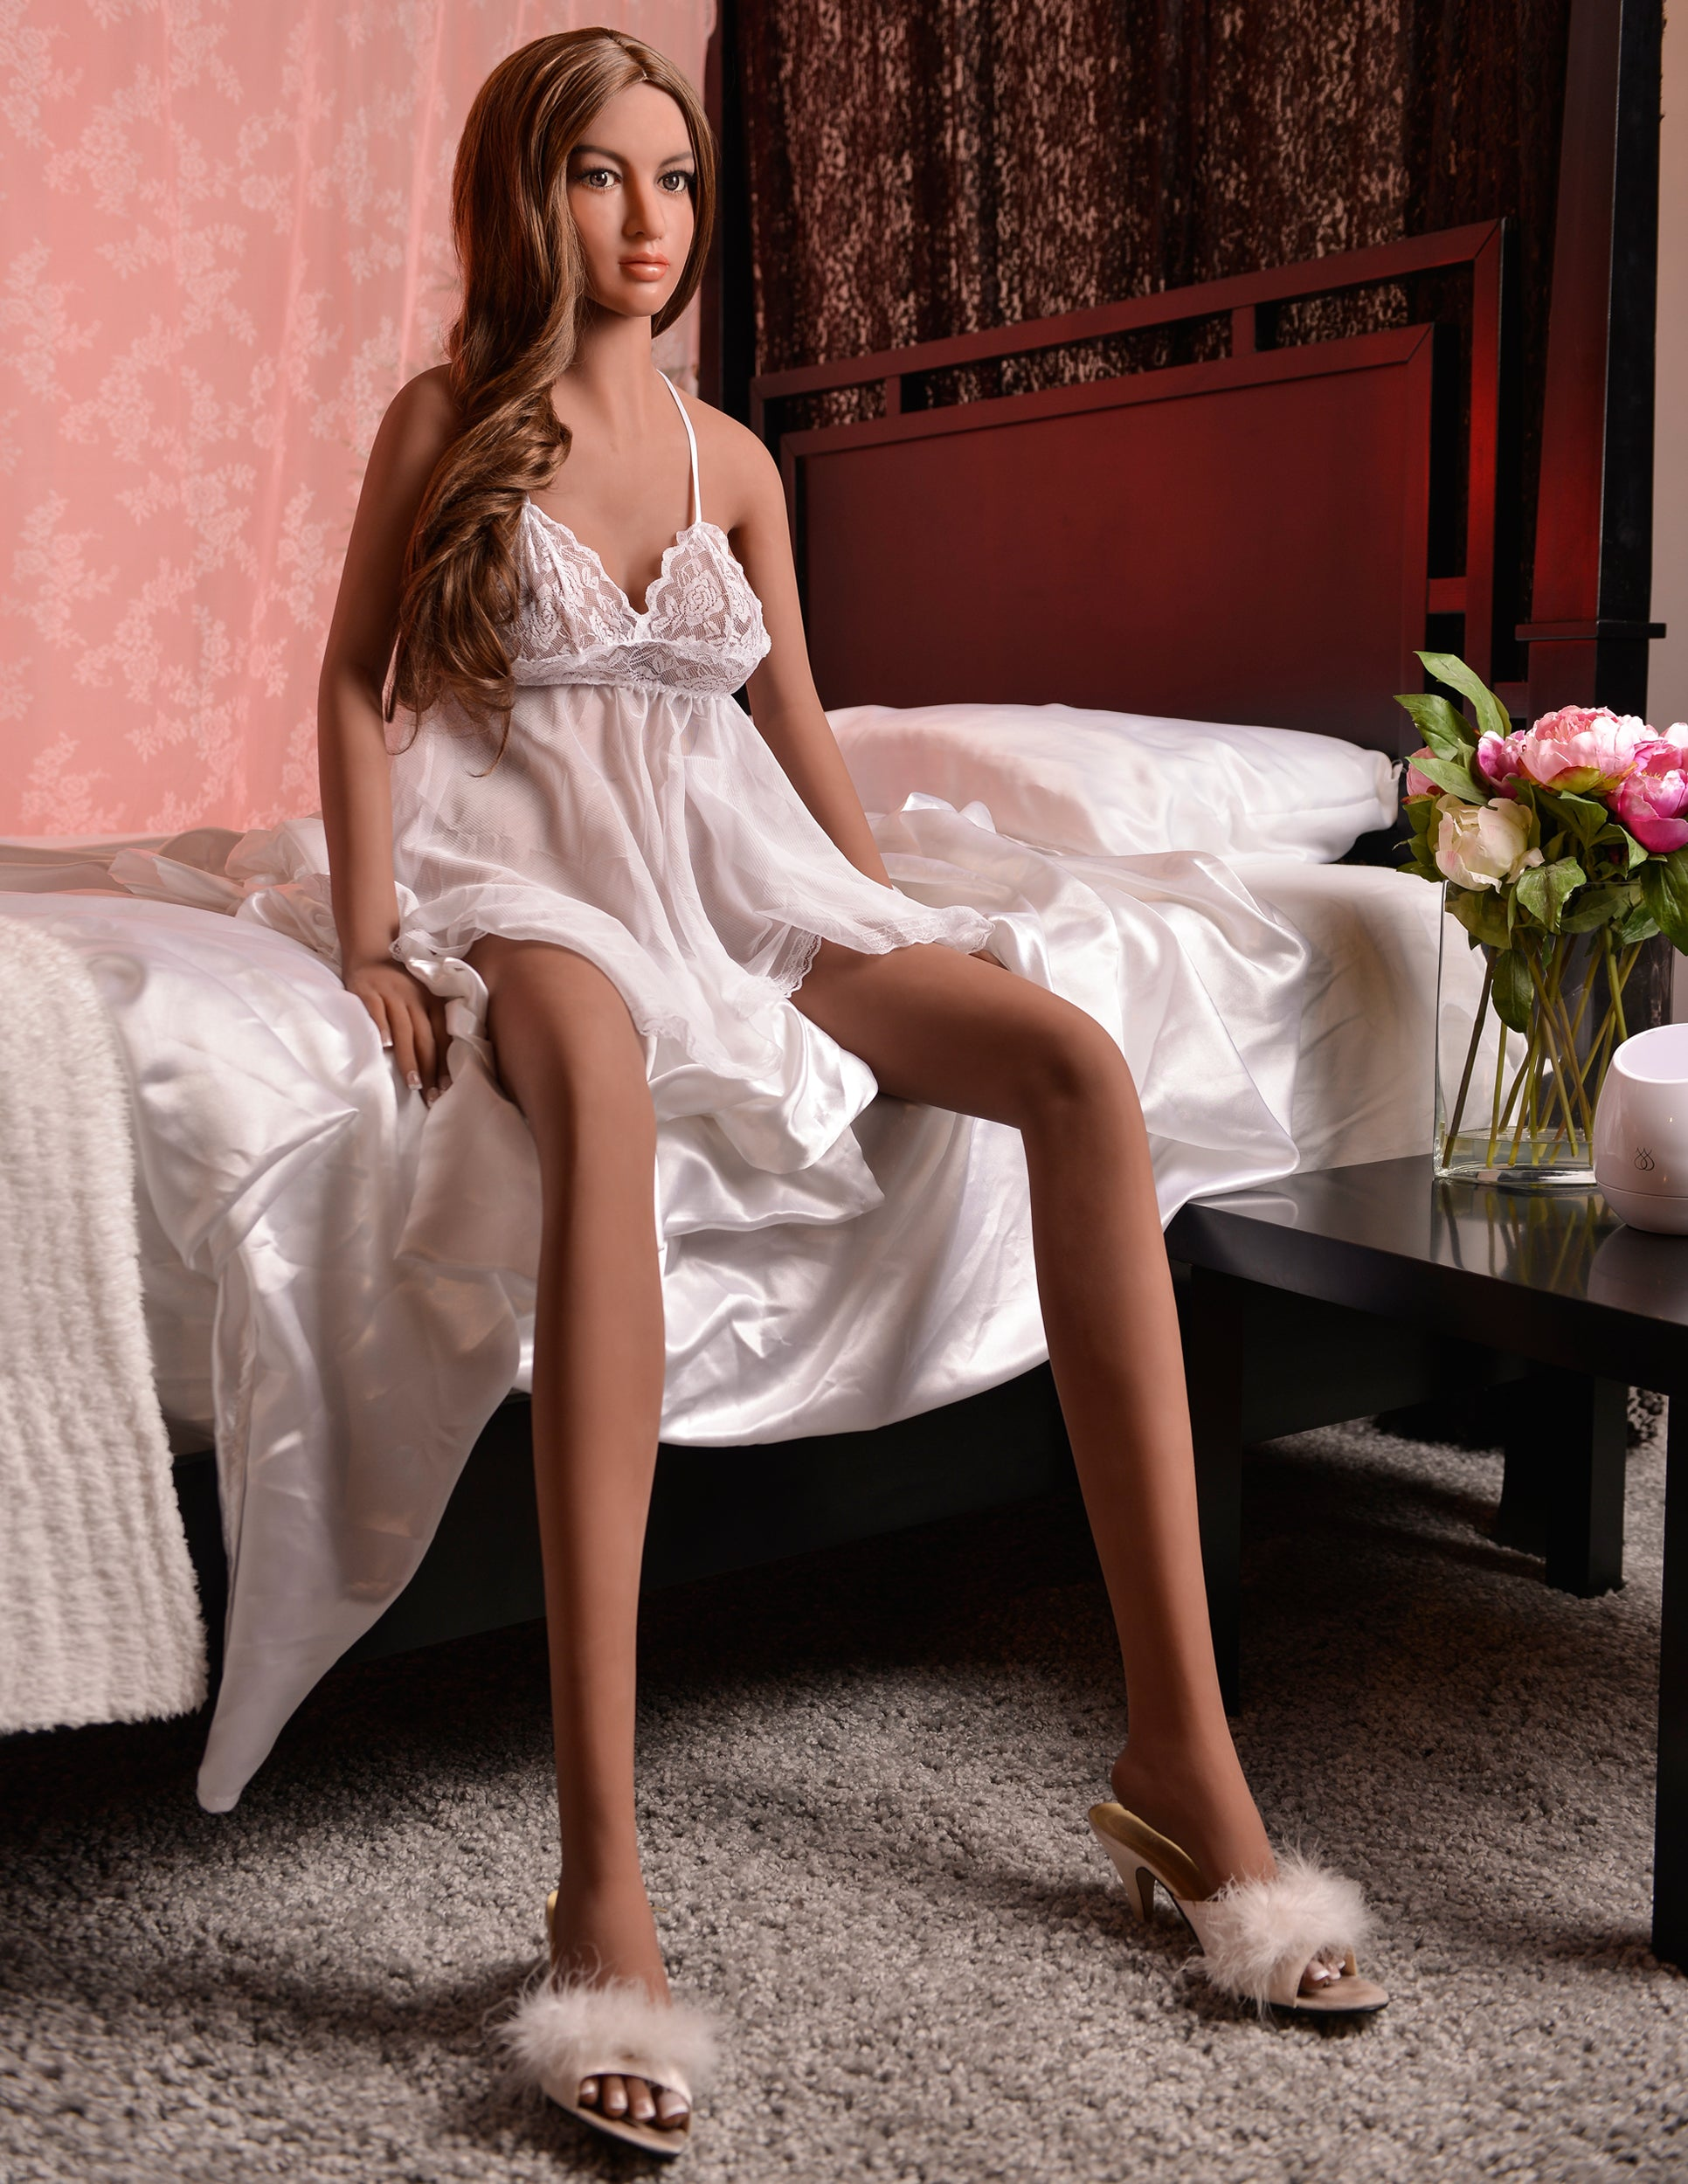 Ultimate Fantasy Dolls - Carmen sitting on the side of a bed wearing a white negligee